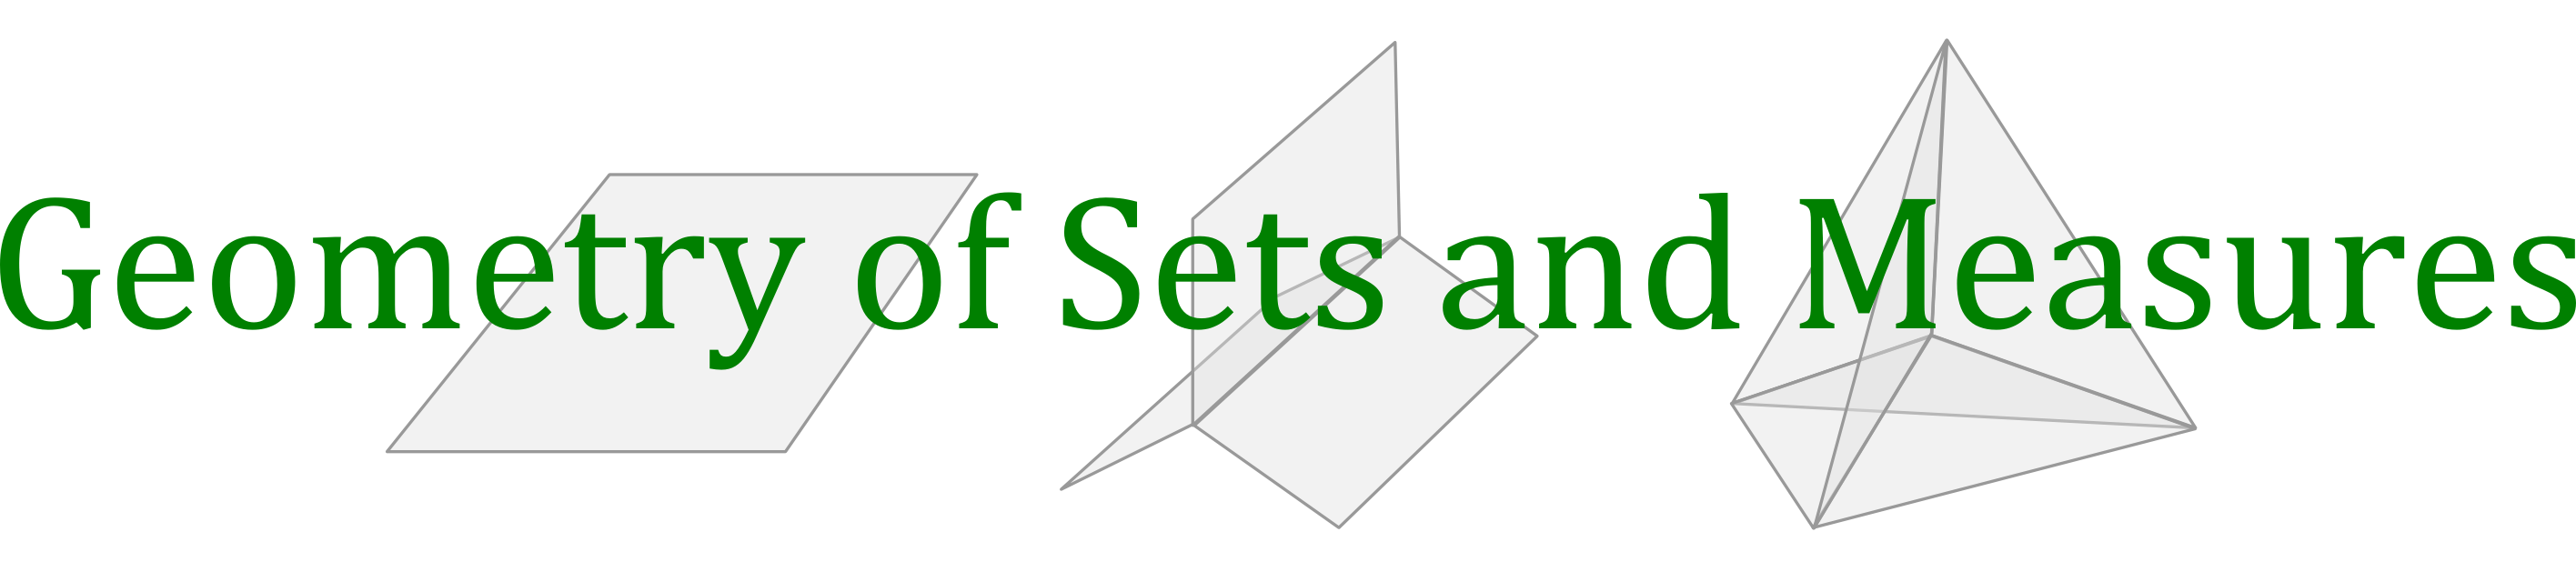 Geometry of Sets and Measures